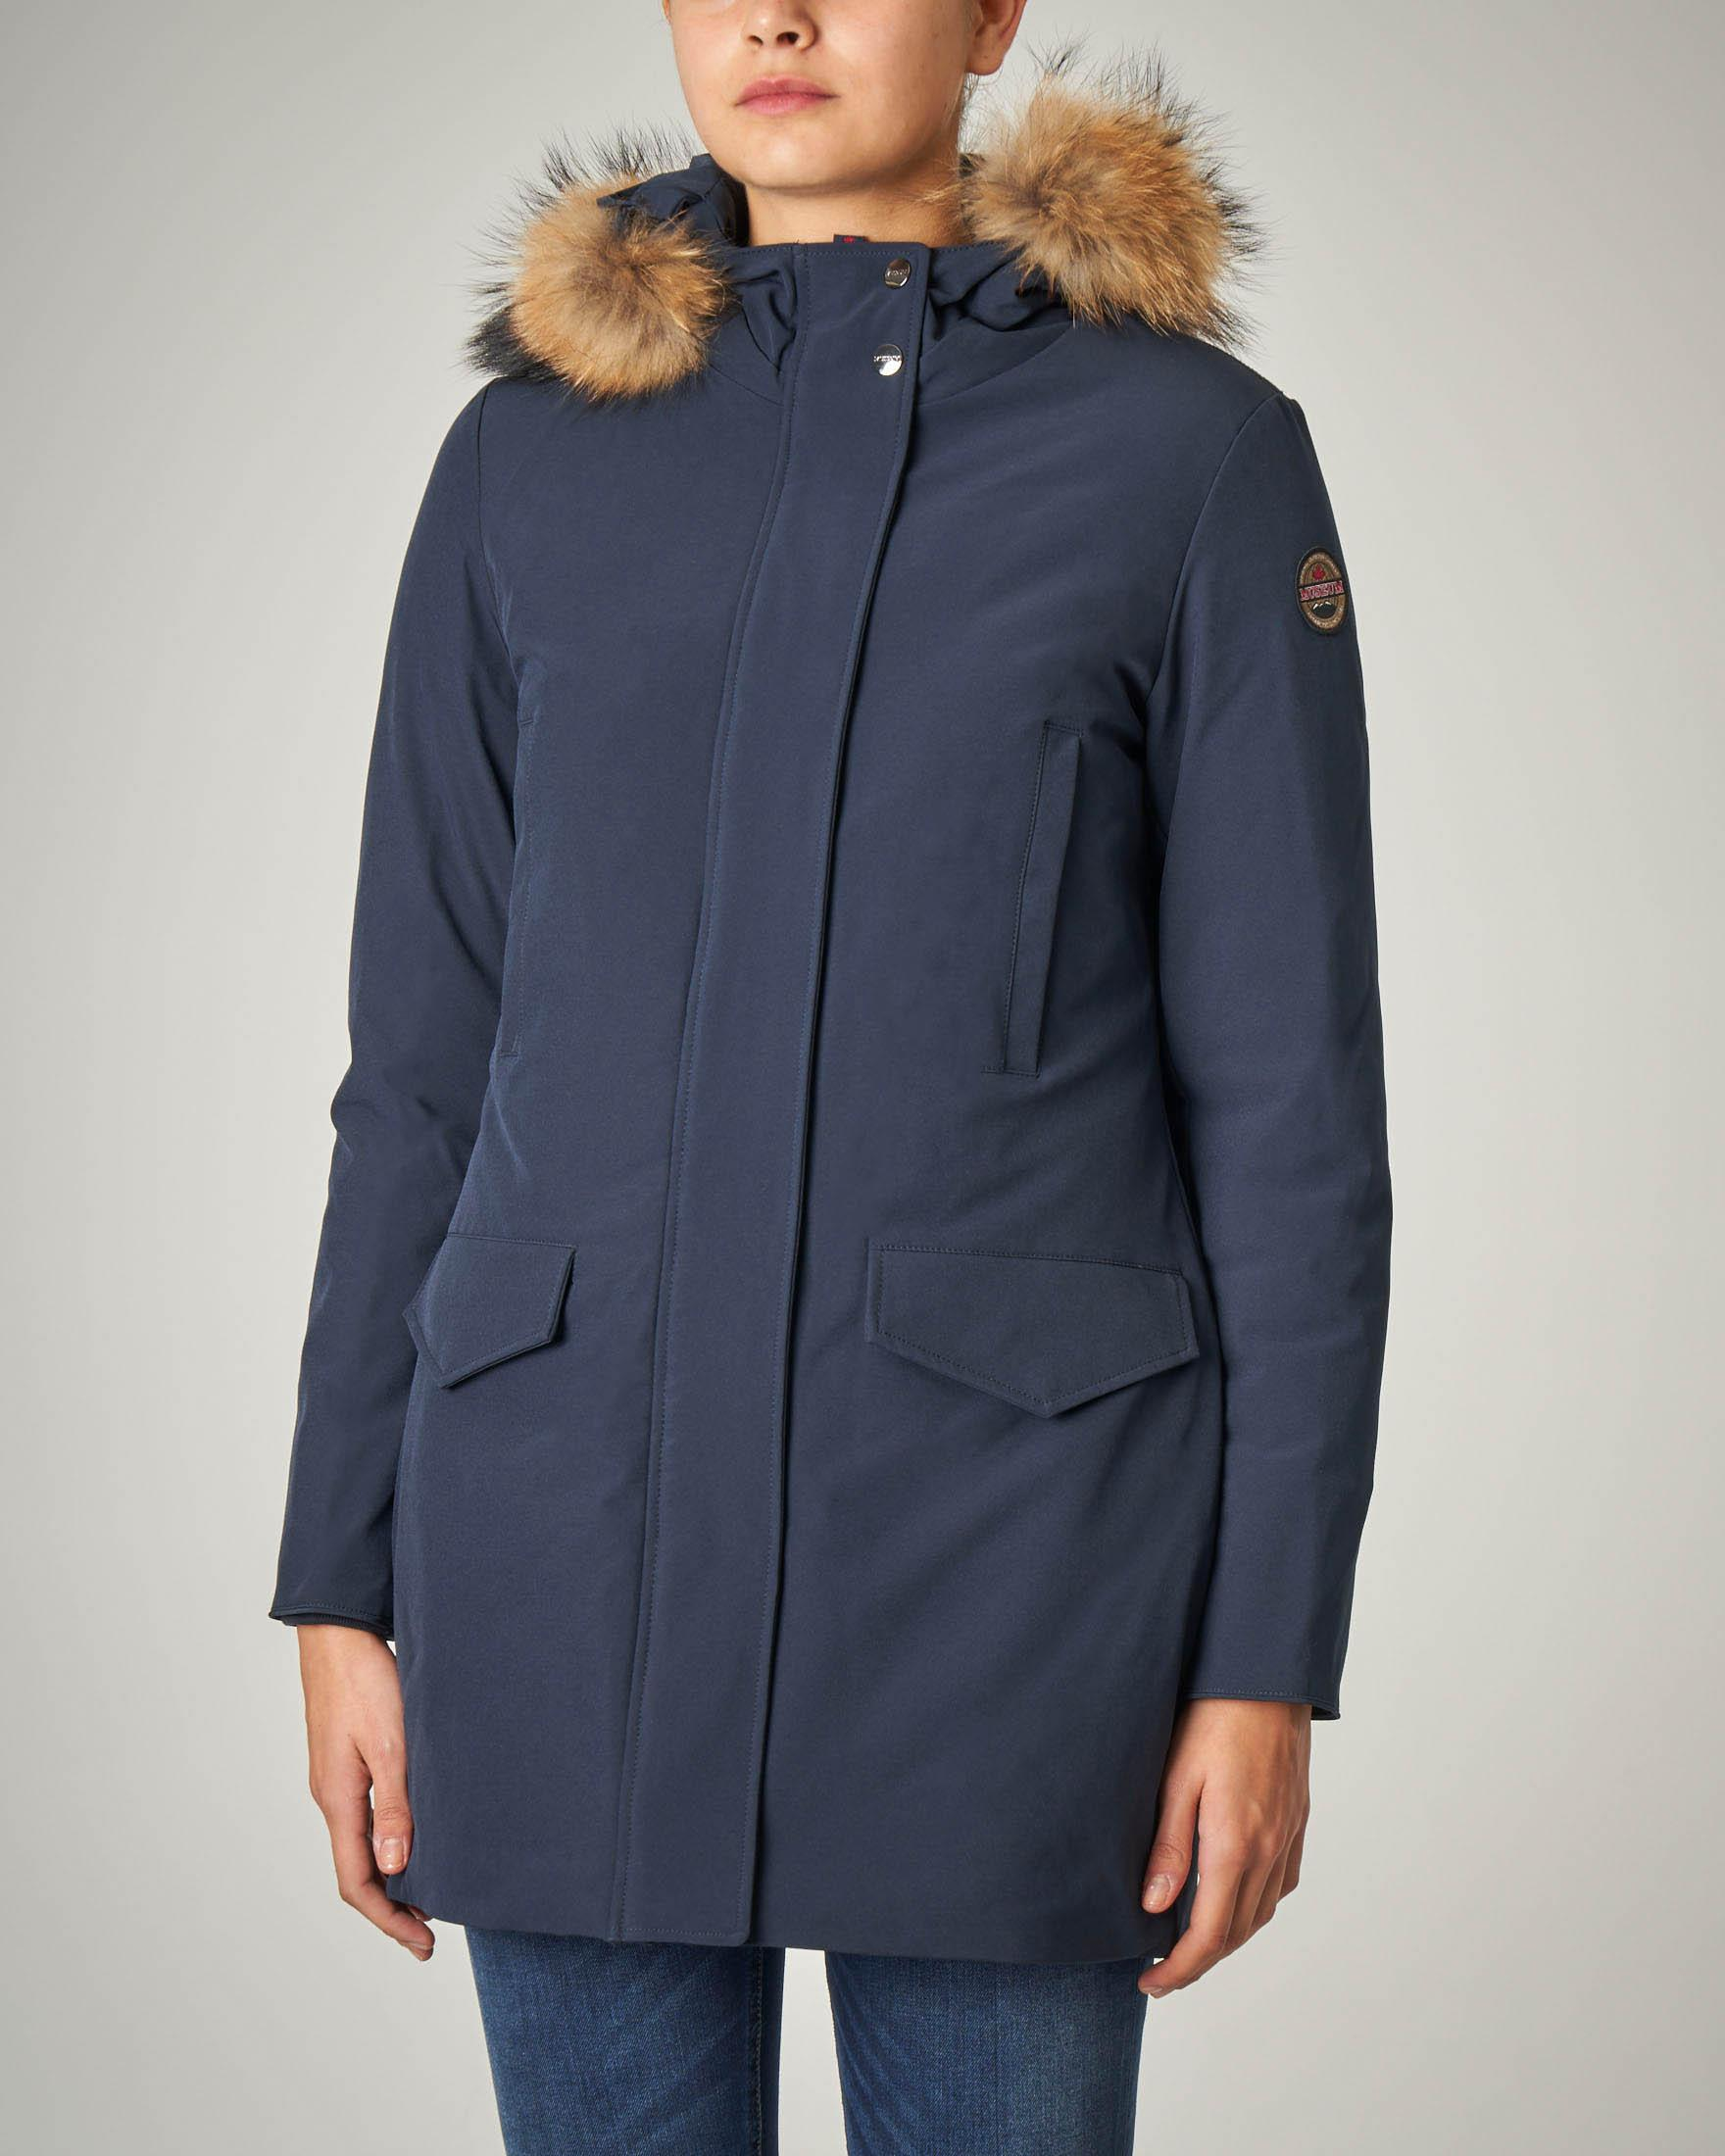 Parka blu con cappuccio con bordo in pelo staccabile